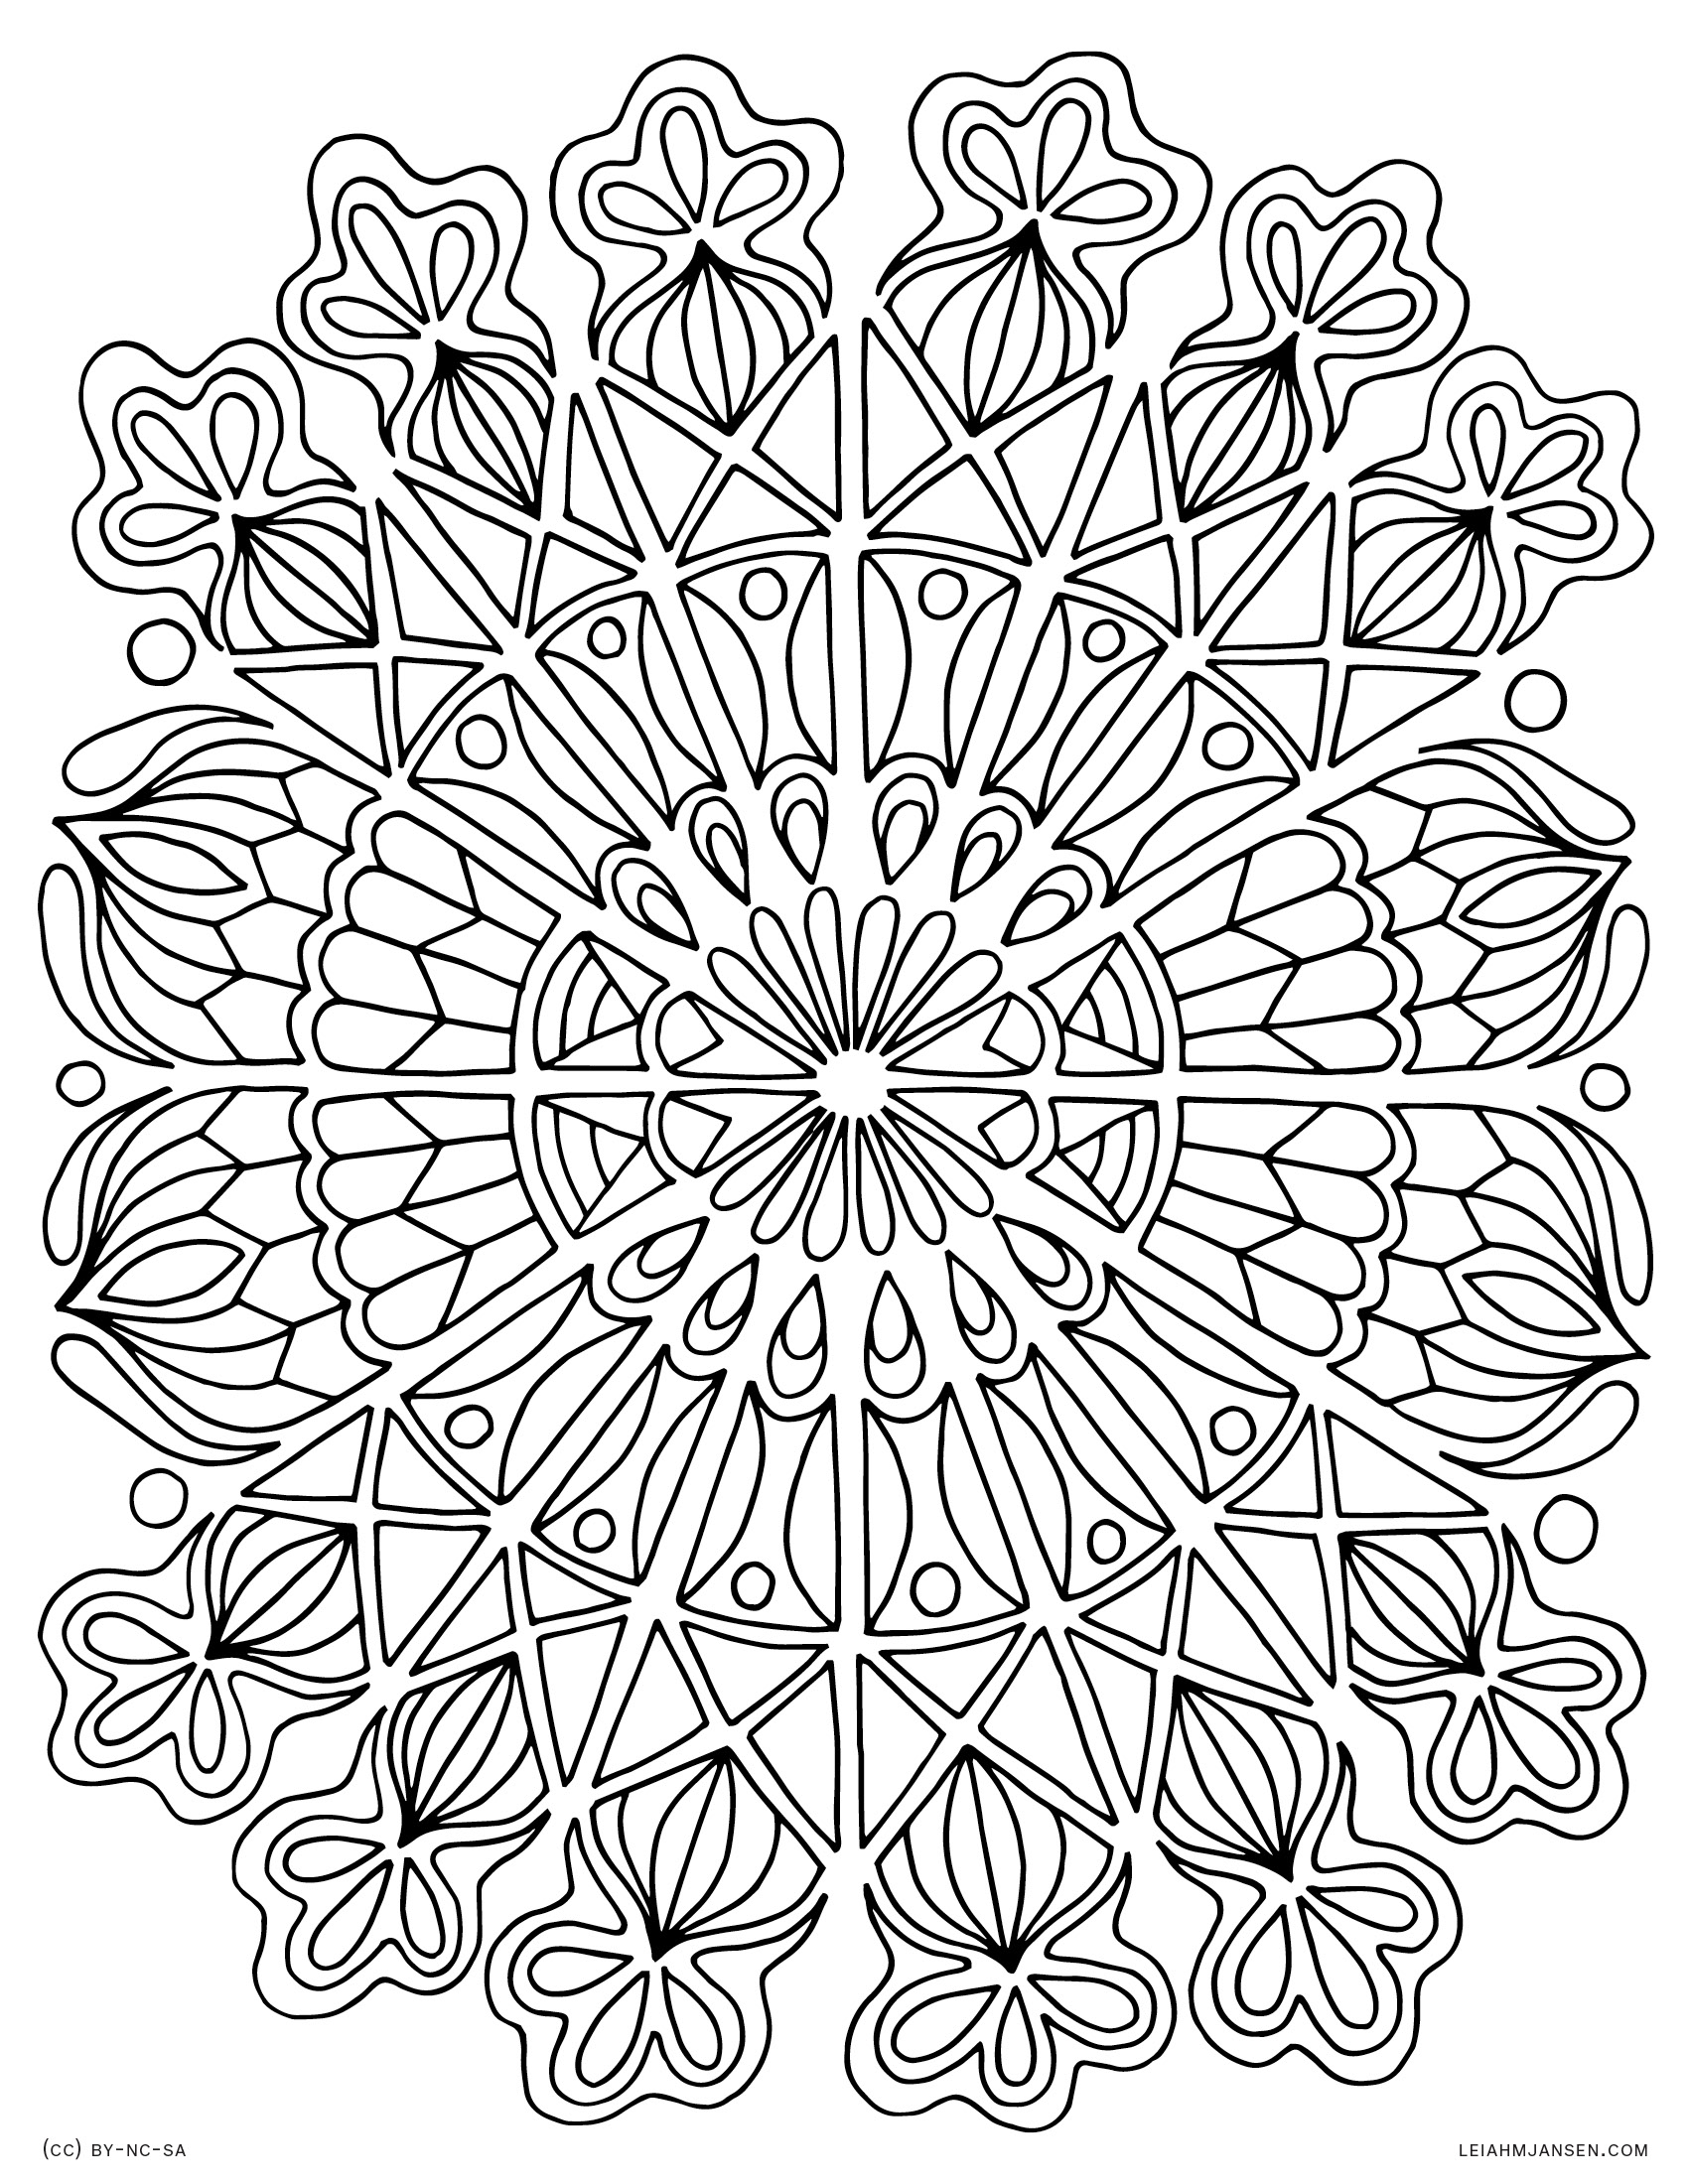 by mandala tapestry tapestry inspired abstract geometric mandala free printable coloring page for adults